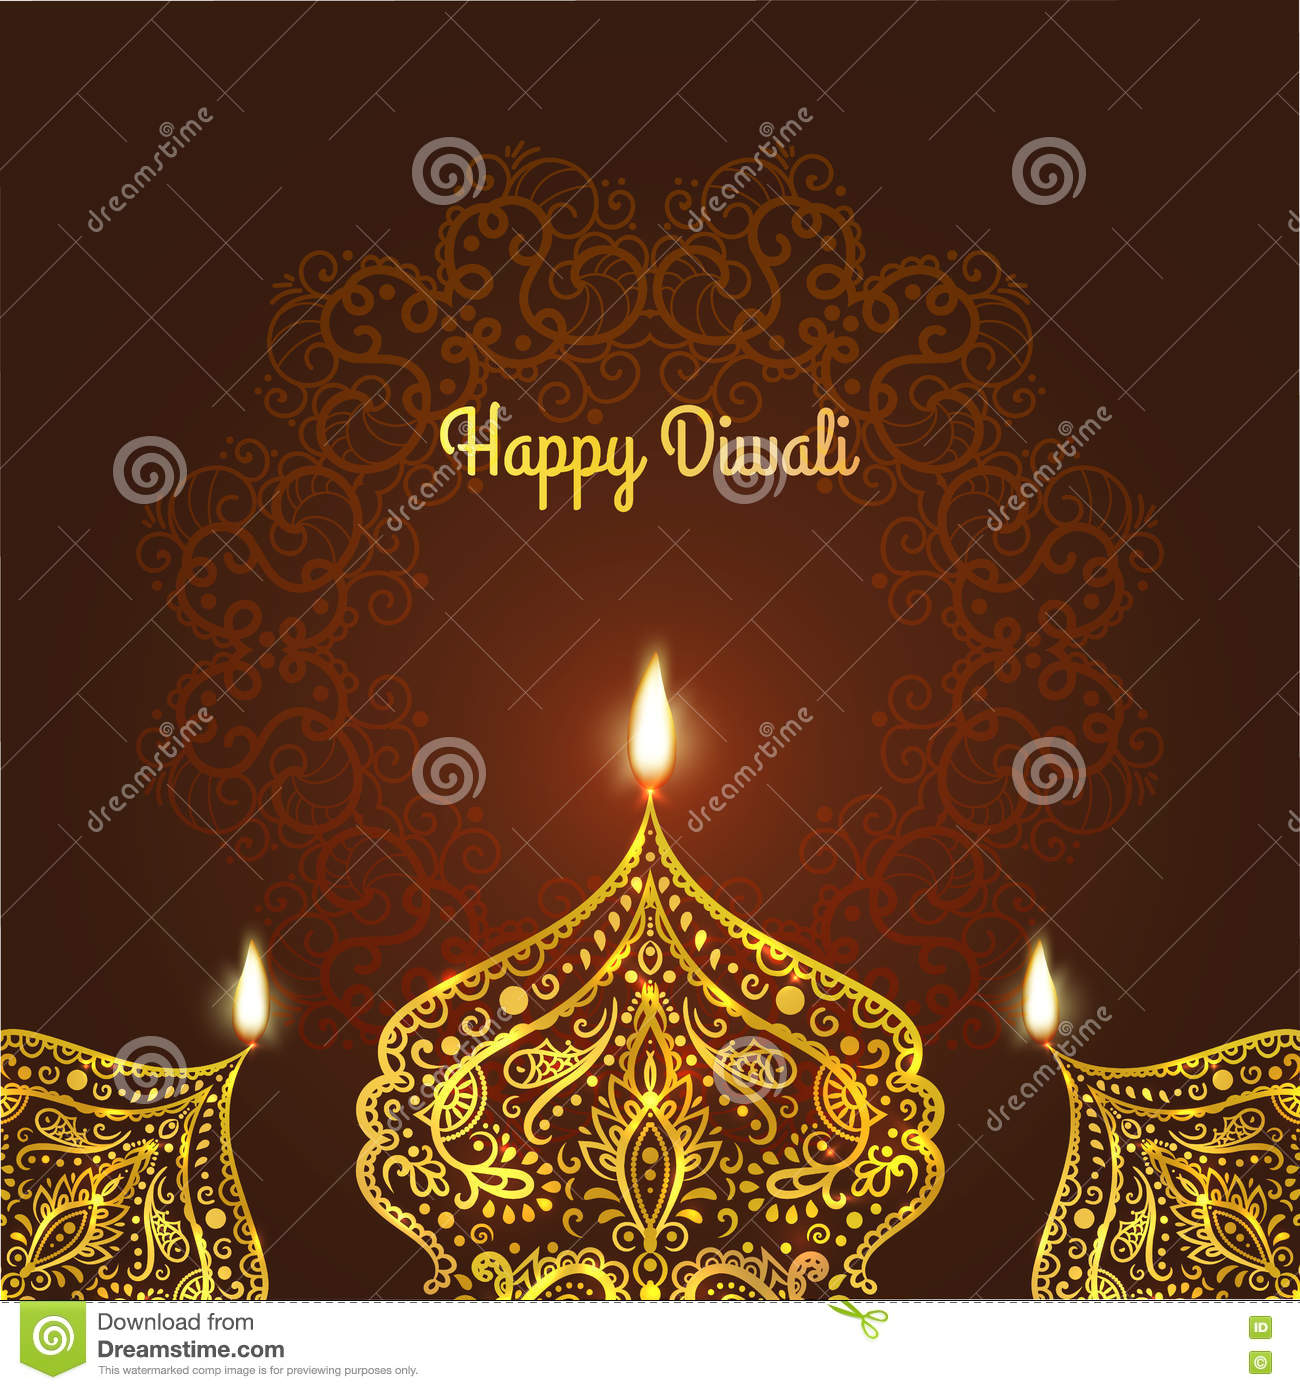 Happy Diwali Greeting Card Design For Diwali Festival With